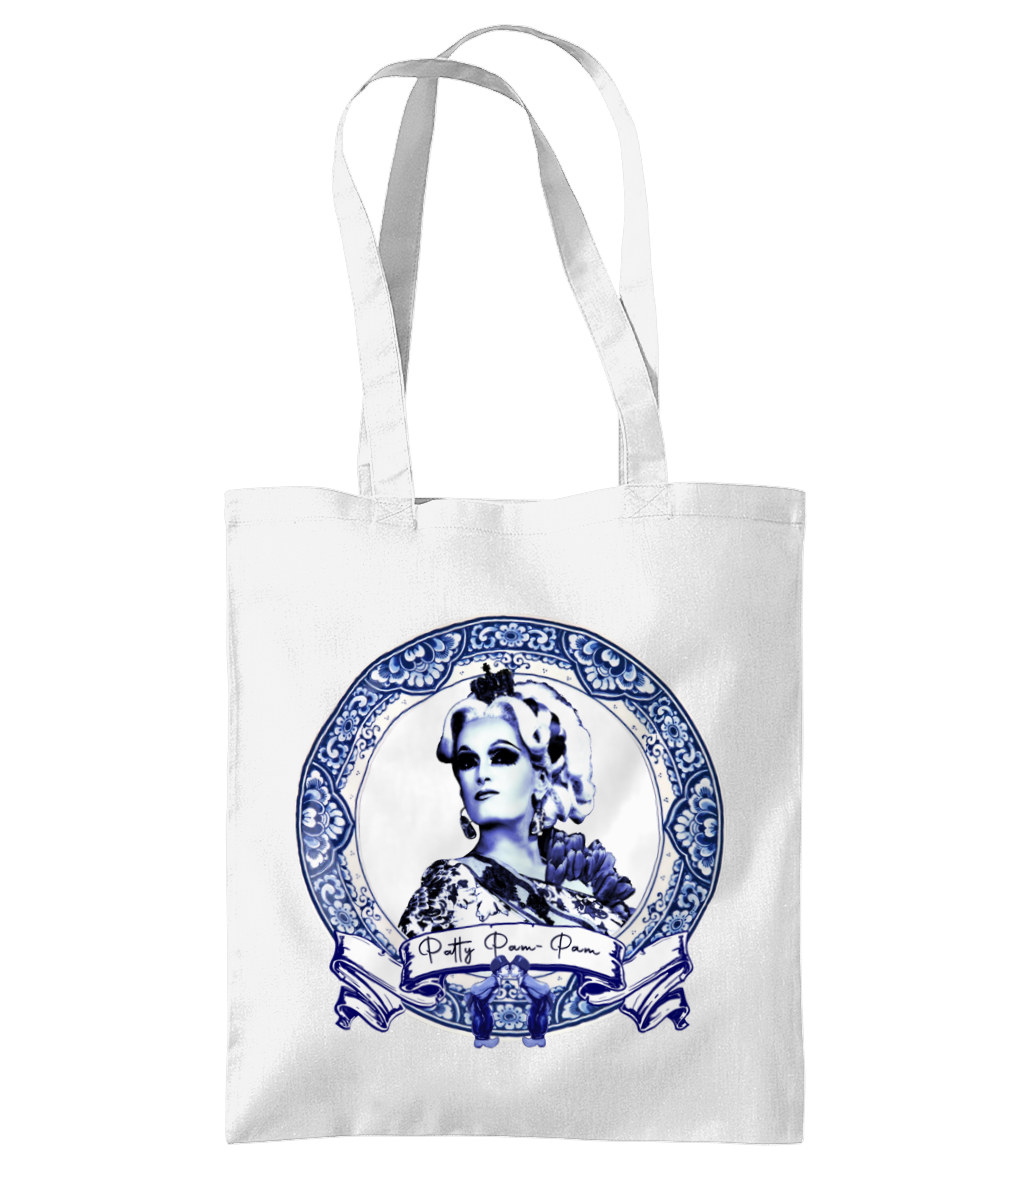 Patty Pam-Pam - Delft Blue Tote Bag